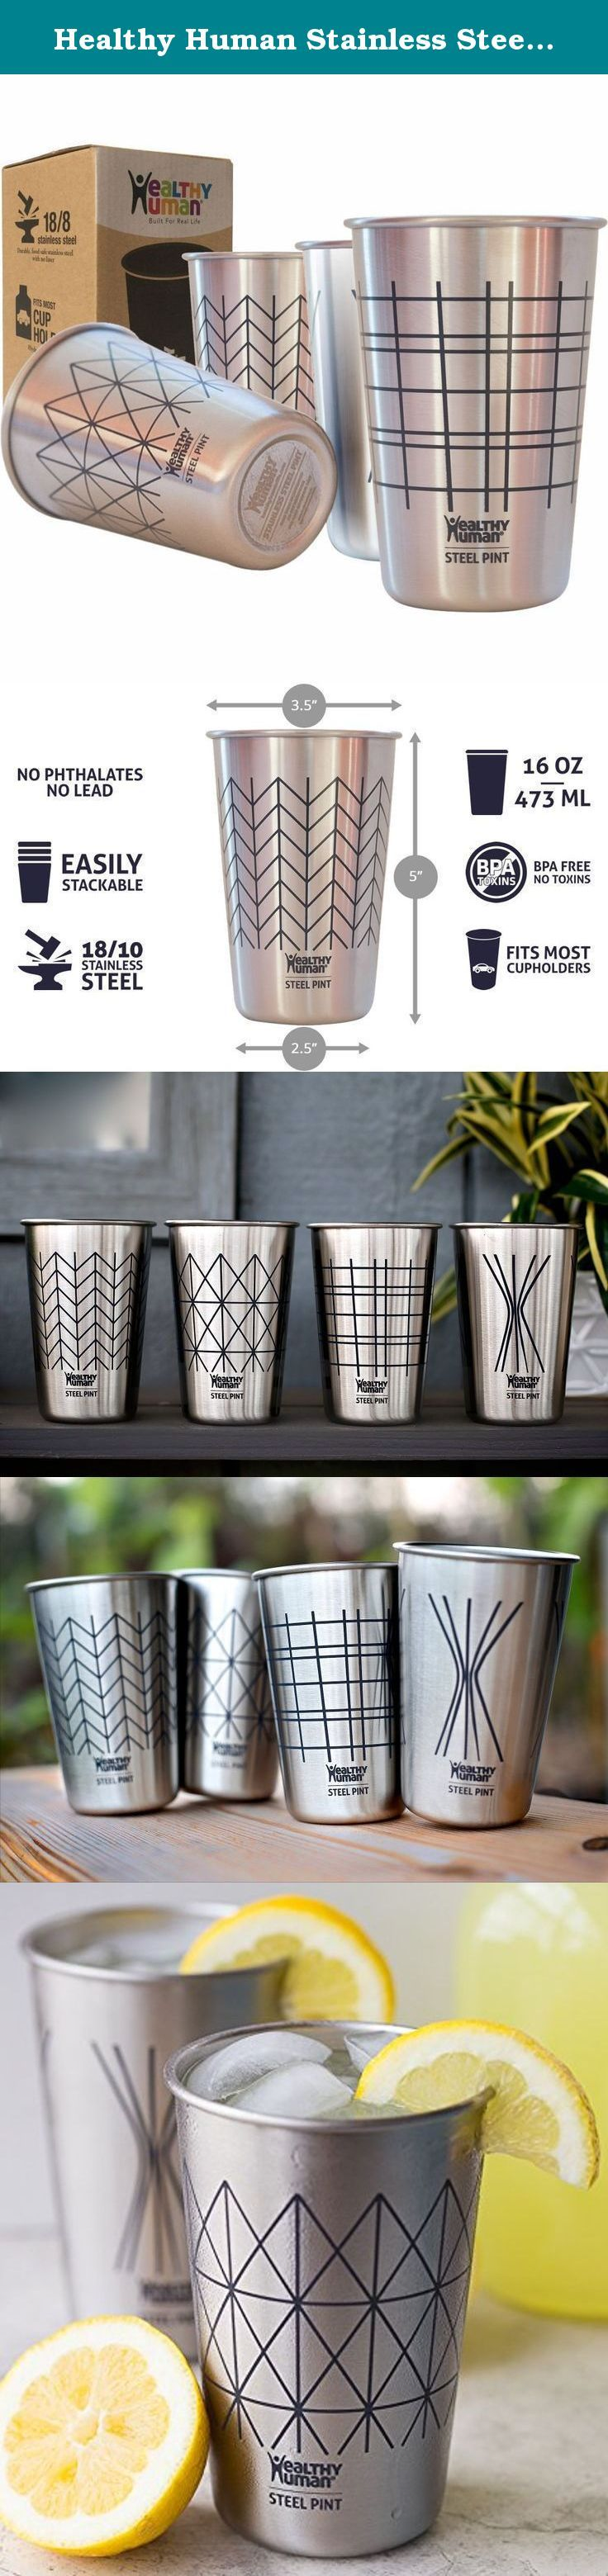 Healthy Human Stainless Steel Cups - 16oz (4 Pack) Ideal Beer Pints, Iced Tea Tumblers, Wine & Water Mugs, Camping Cup - Bar Set. - Line Style. Healthy Human Stainless Steel Pint Cups (Set of 4) 16oz, Safe Toxic Free, Reusable, Recyclable, Stackable, Perfect for Travel and at Home - Lines Healthy Human designs and creates safe, reusable and durable everyday products that make being a Healthy Human Easy & Fun! These cups are perfect for a refreshing drink of water, fresh juice, iced brewed...